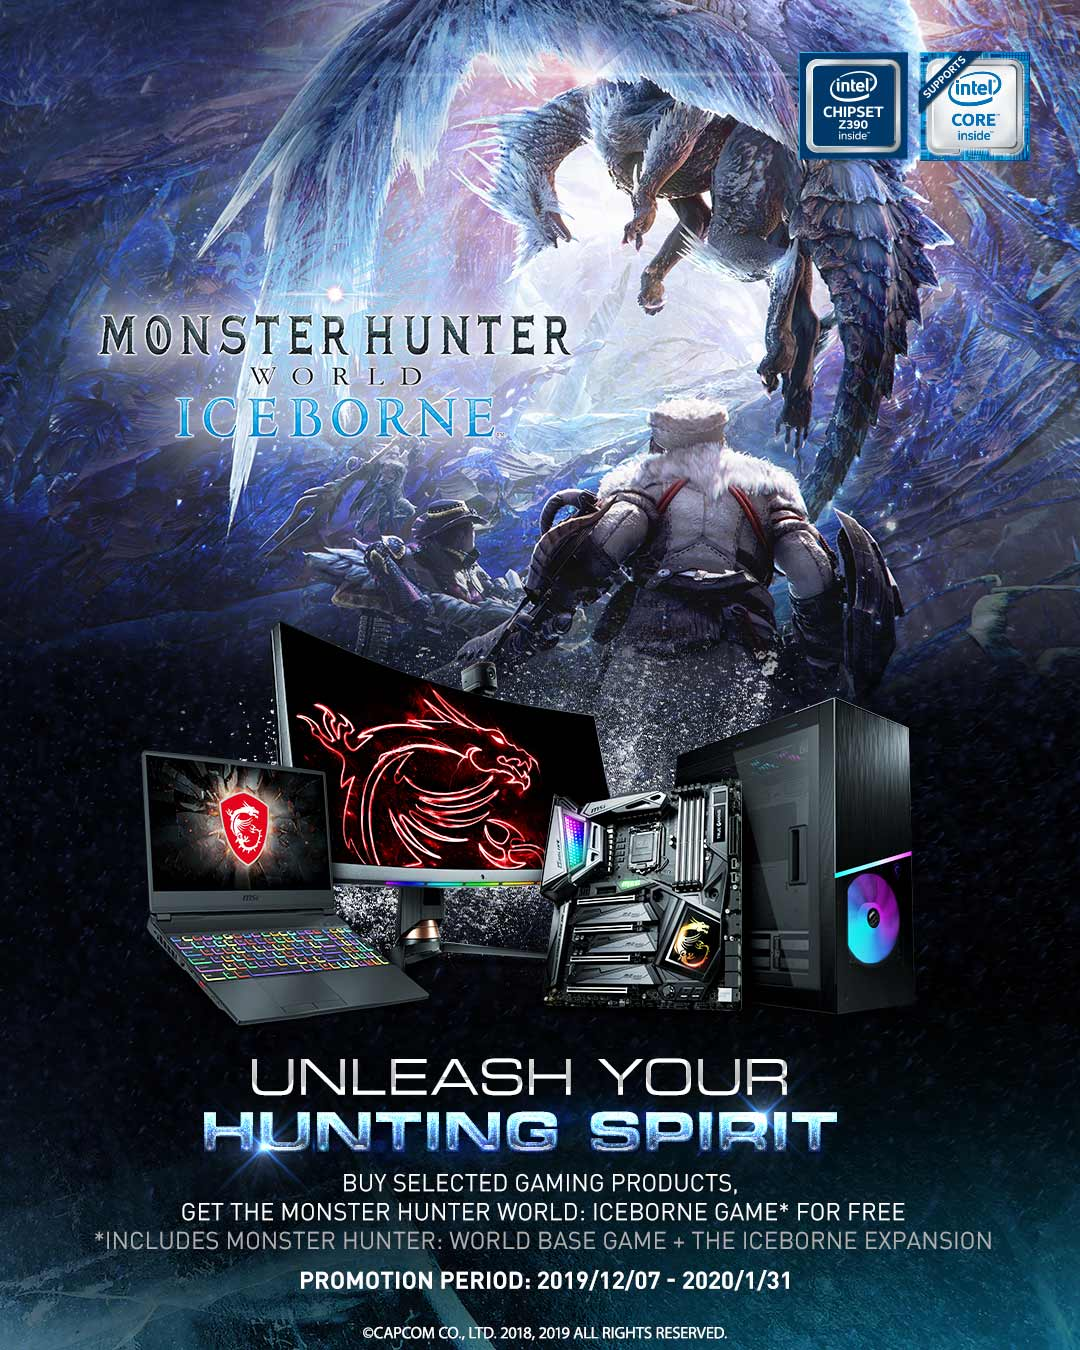 Unleash your hunting spirit